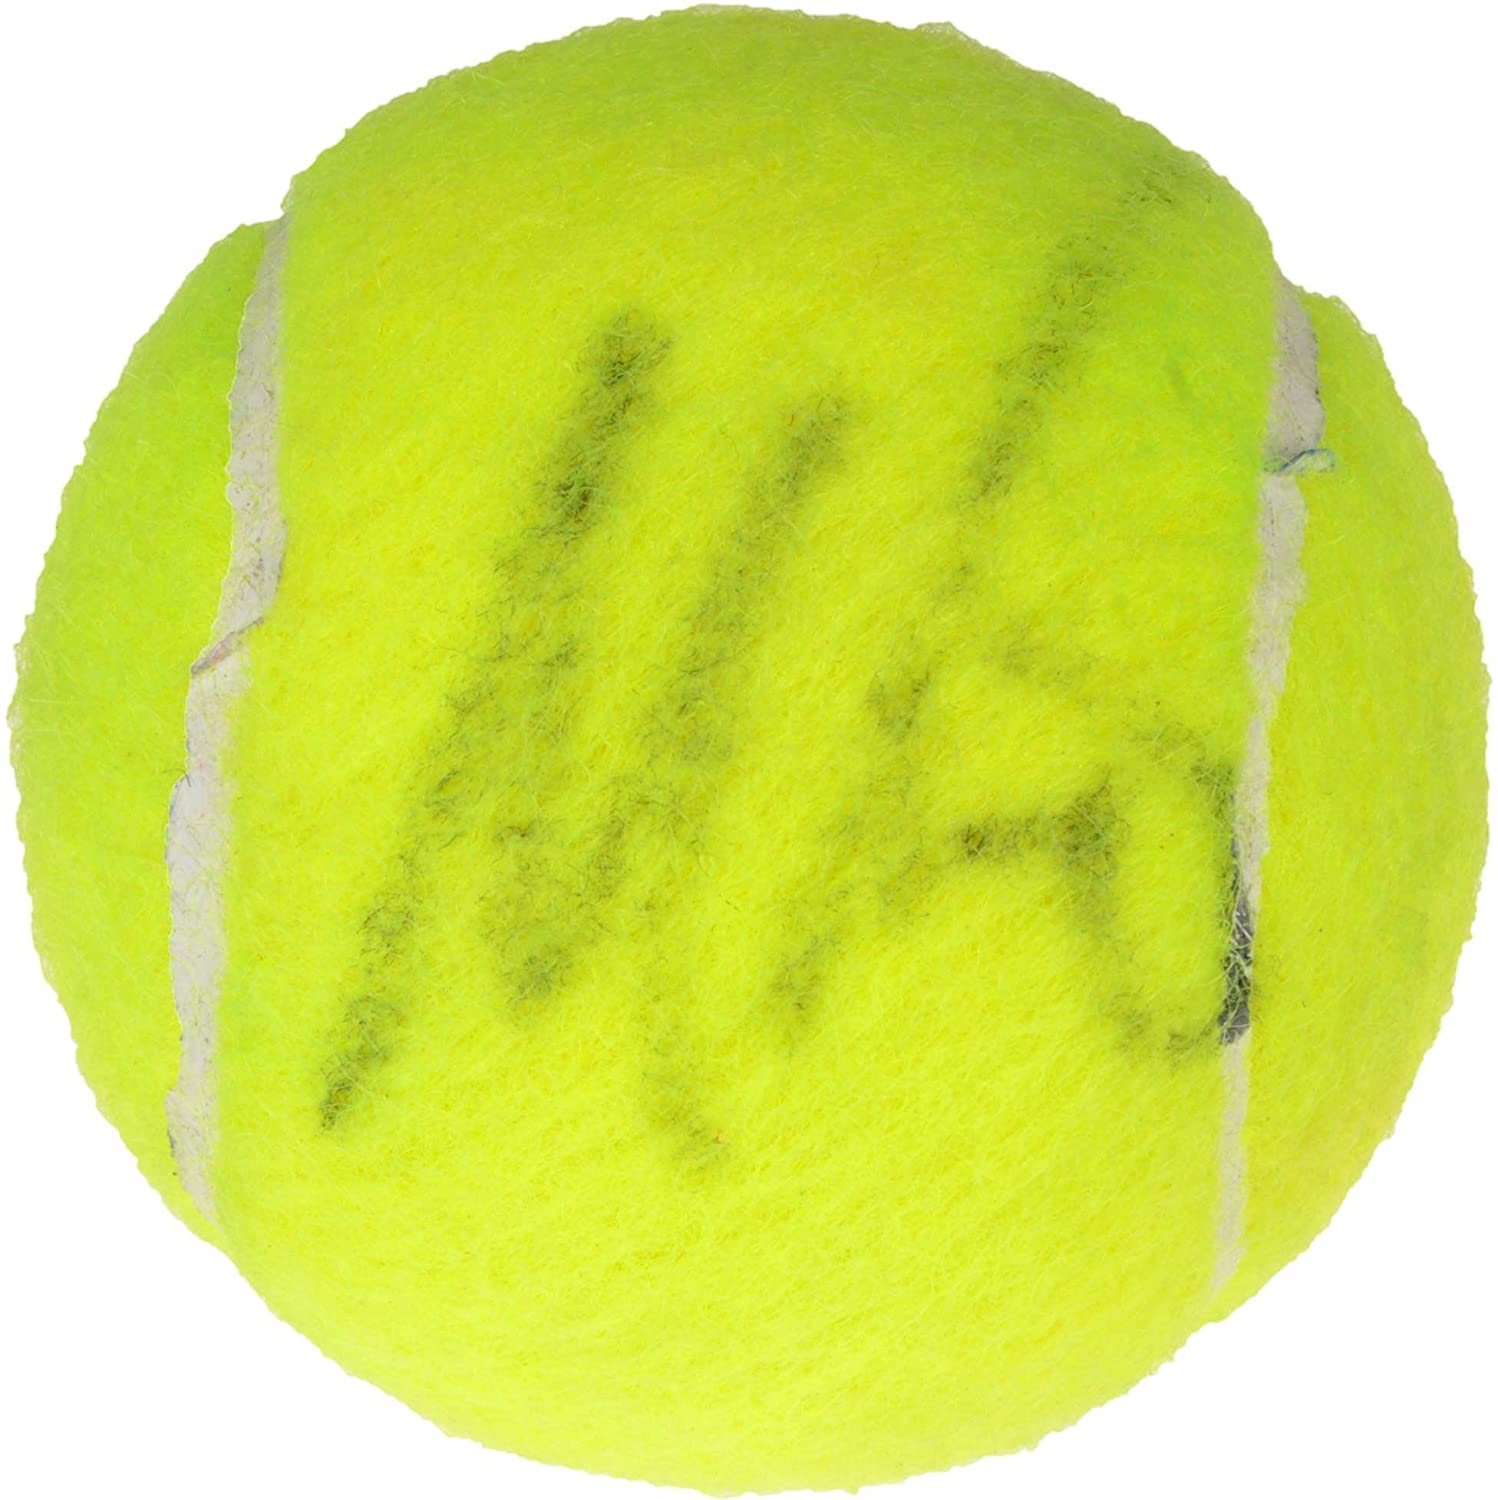 Maria Sharapova Autographed Wilson US Open Tennis Ball - Fanatics Authentic Certified - Autographed Tennis Balls